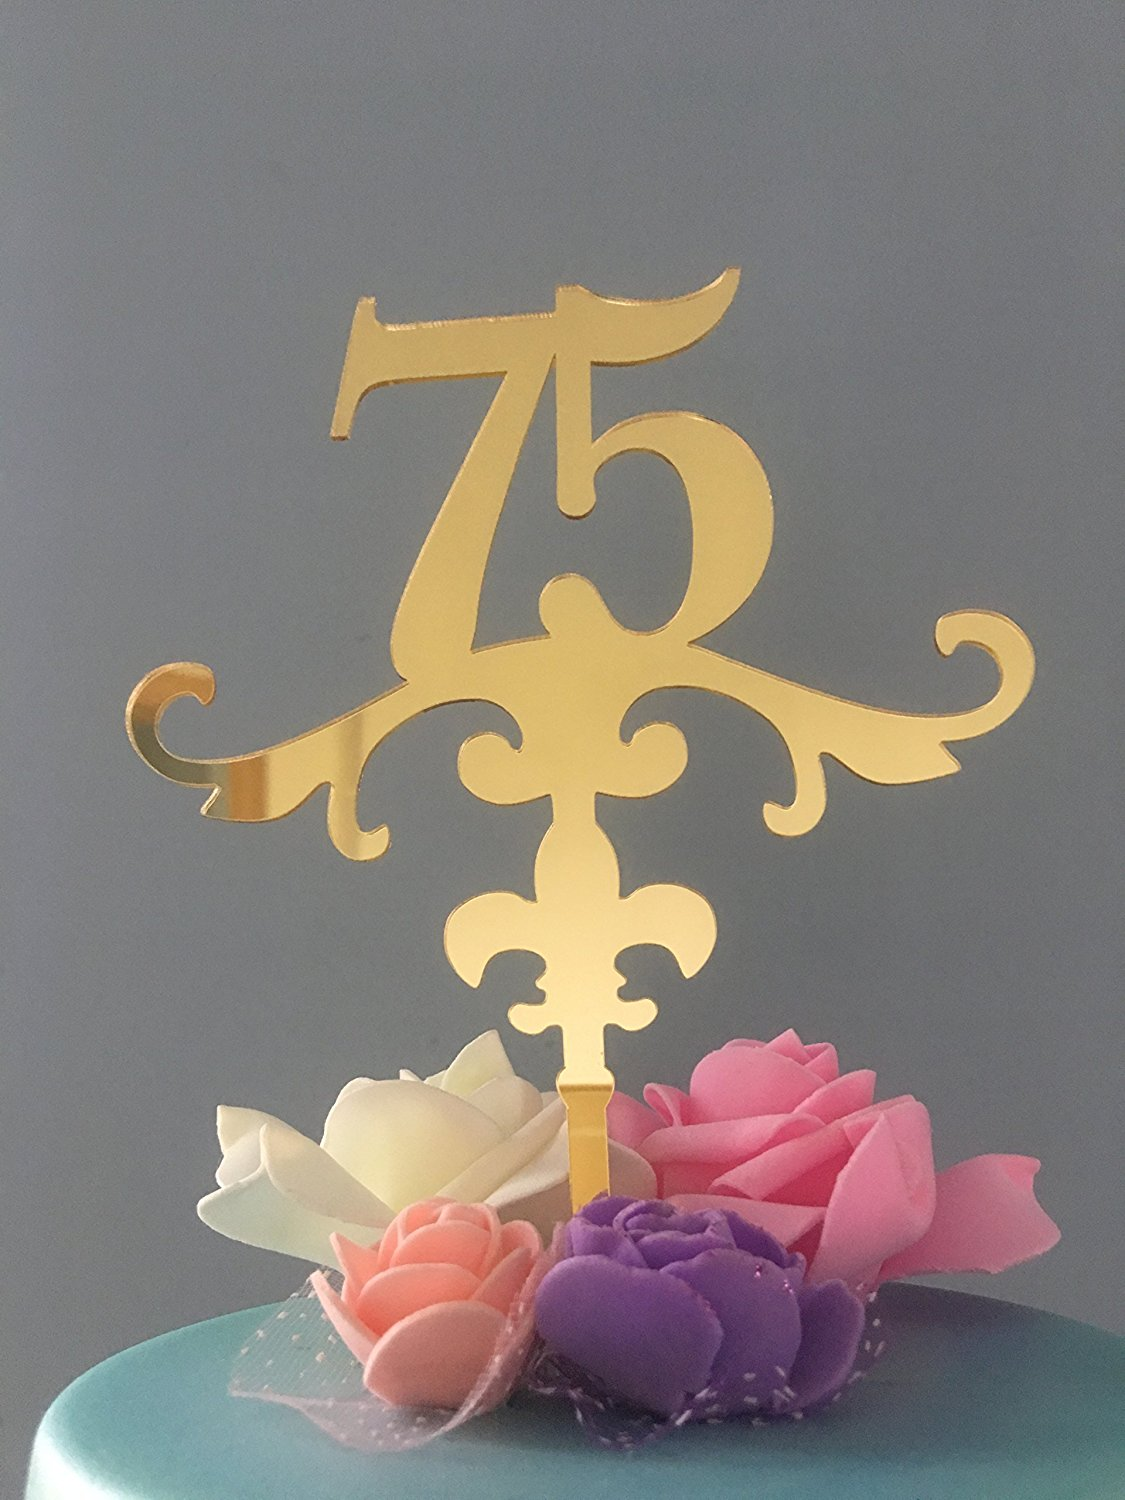 ShinyBeauty Birthday Cake Topper Decorations75th Anniversary Topper75th